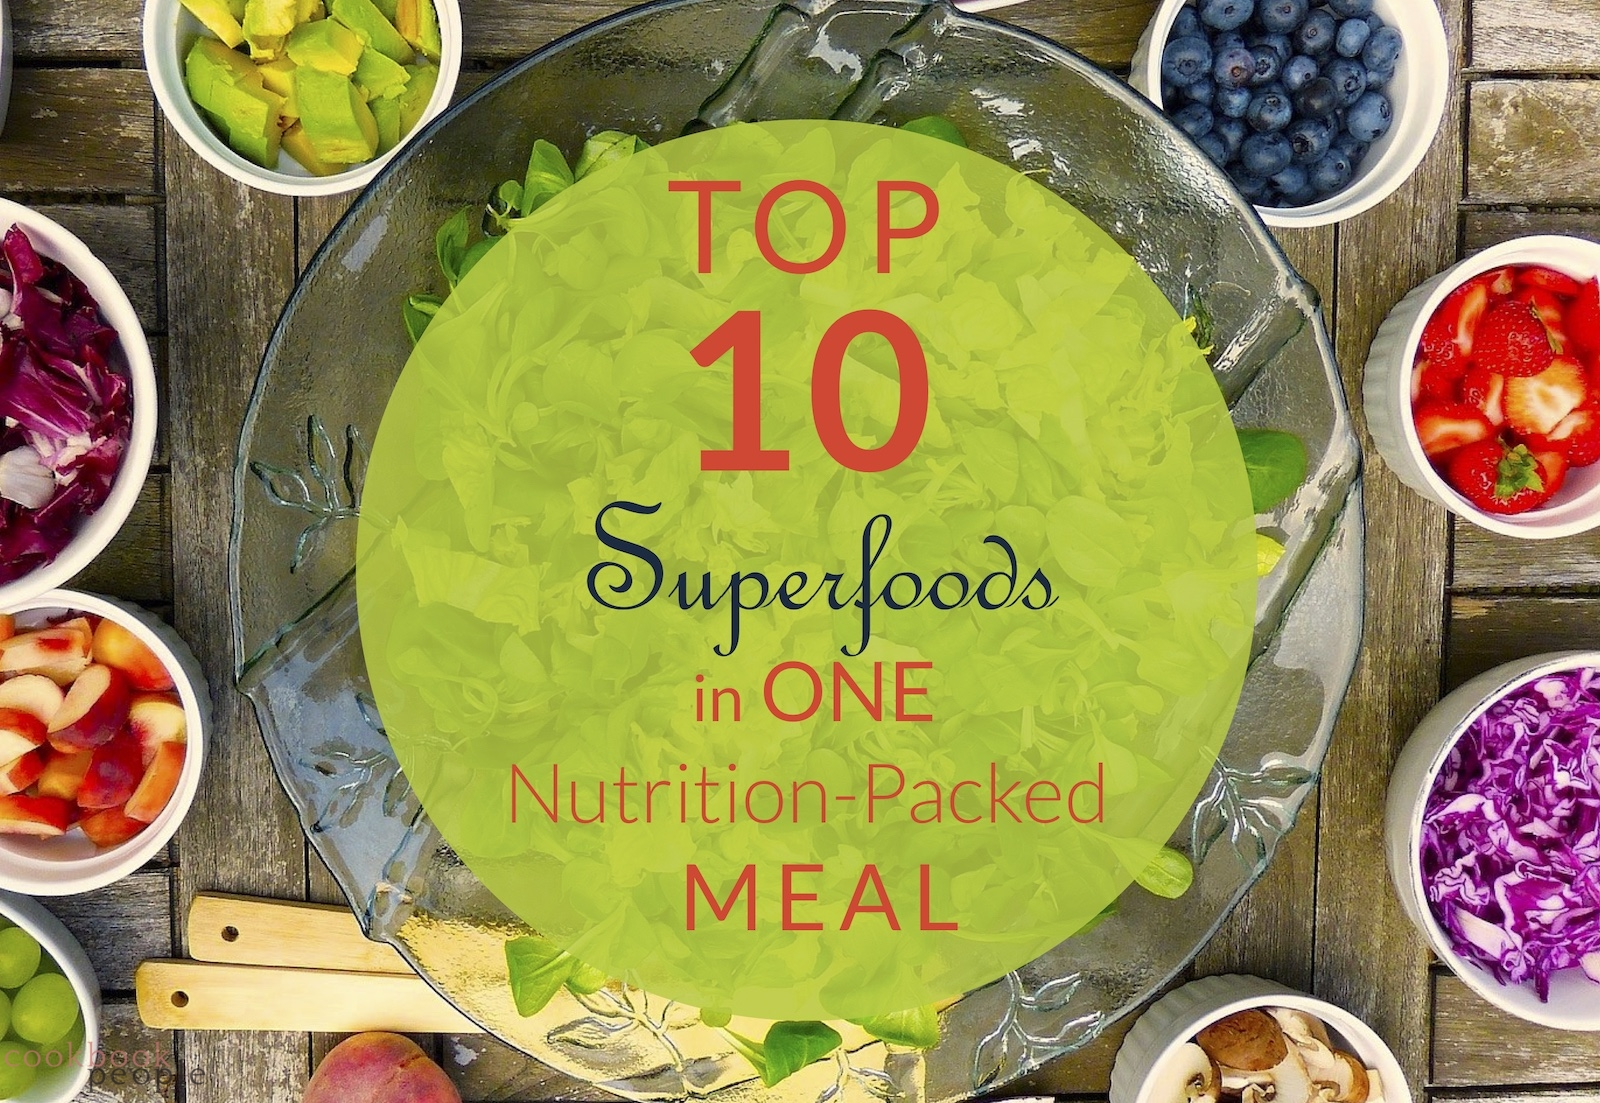 Bowl of salad surrounded by small bowls of other healthy ingredients with text: Top 10 Superfoods in One Nutrition-Packed Meal